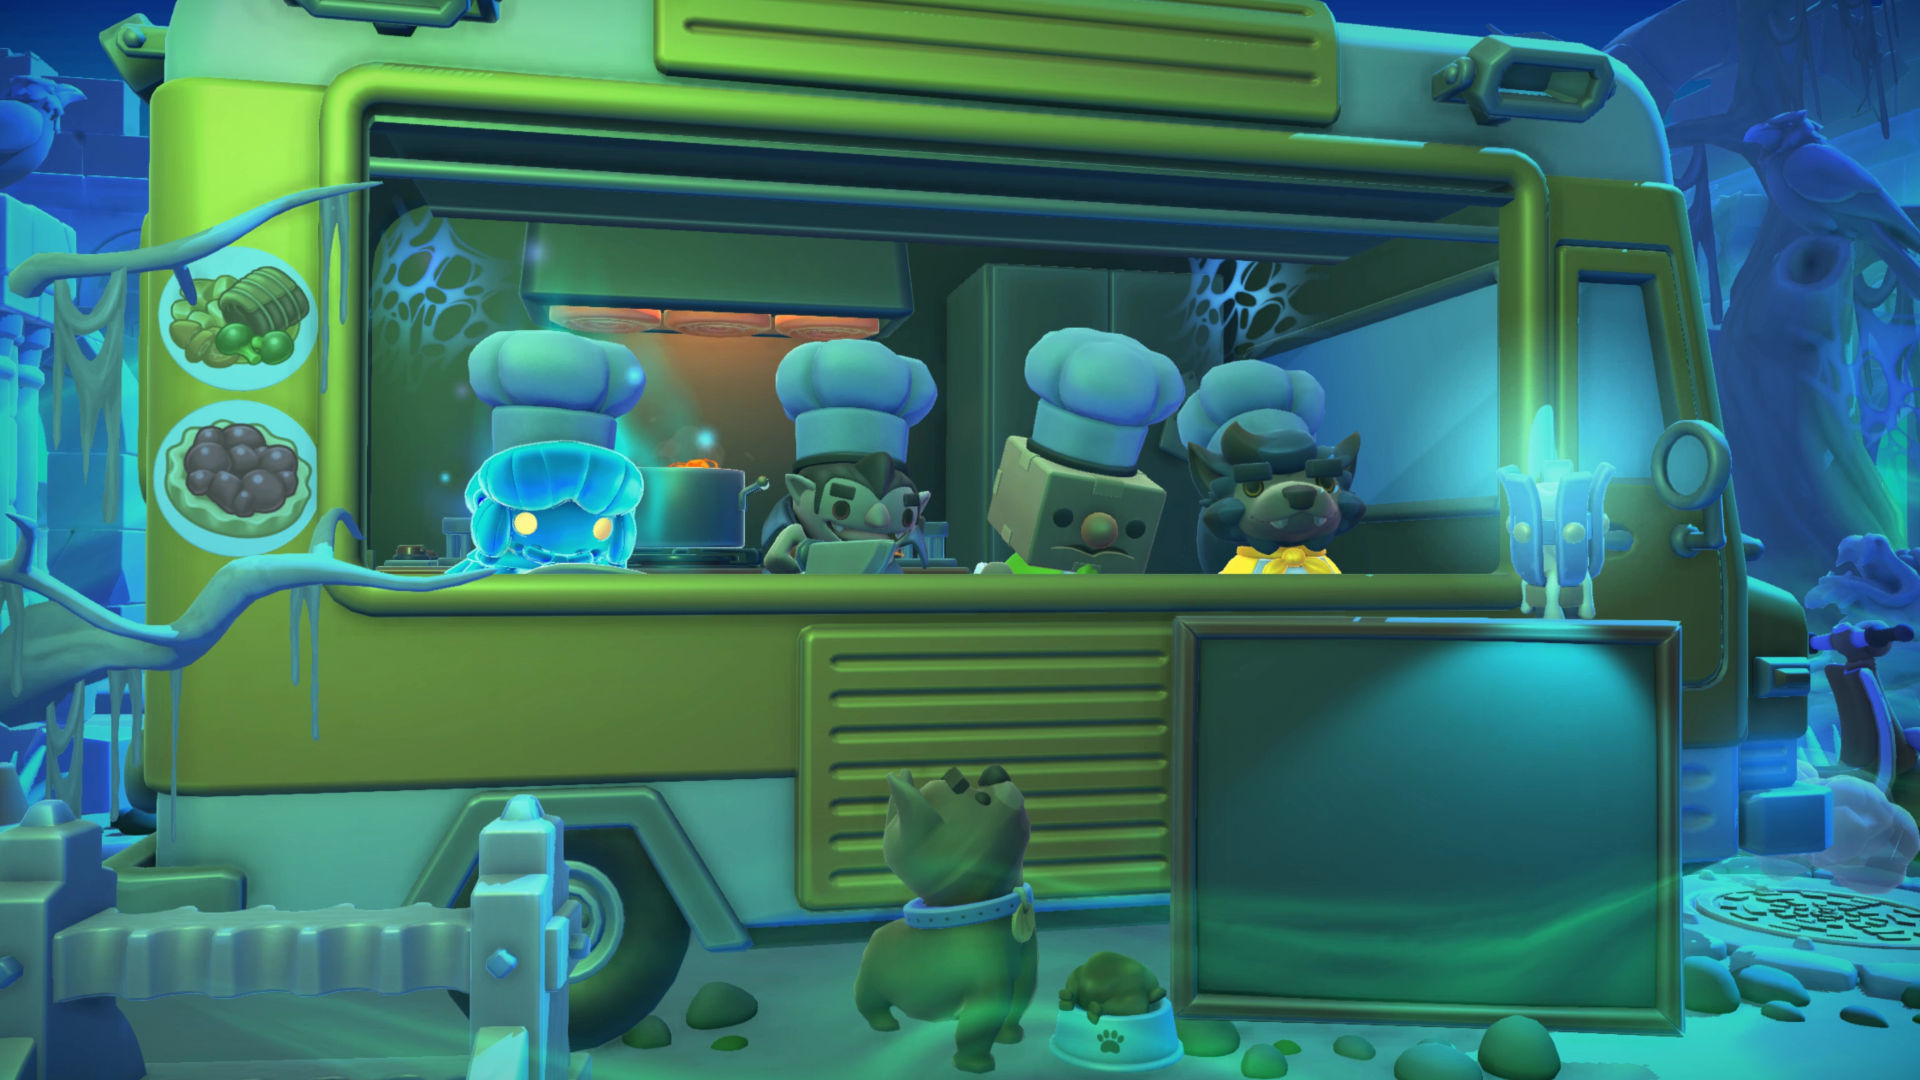 Overcooked! 2: Night of the Hangry Horde DLC Adds a Diabolical New